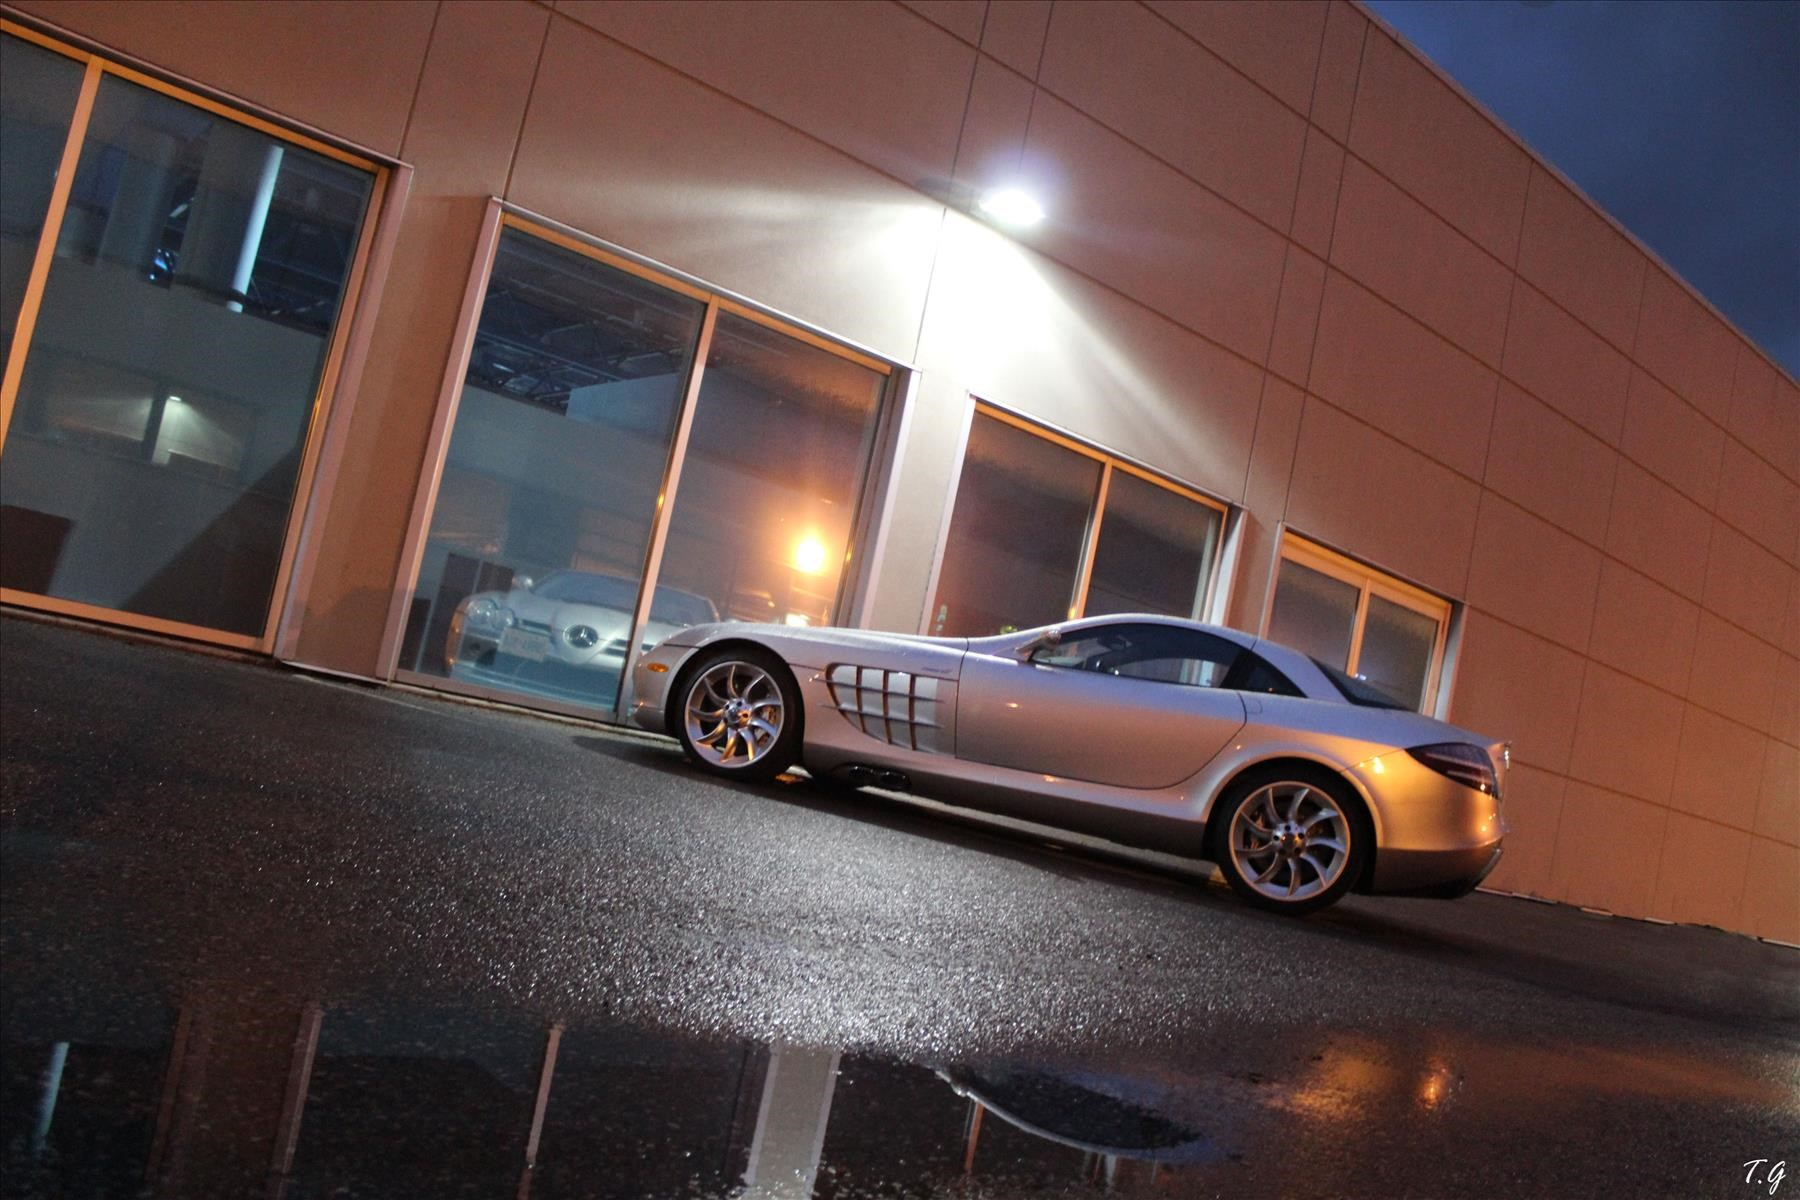 Late night SLR McLaren